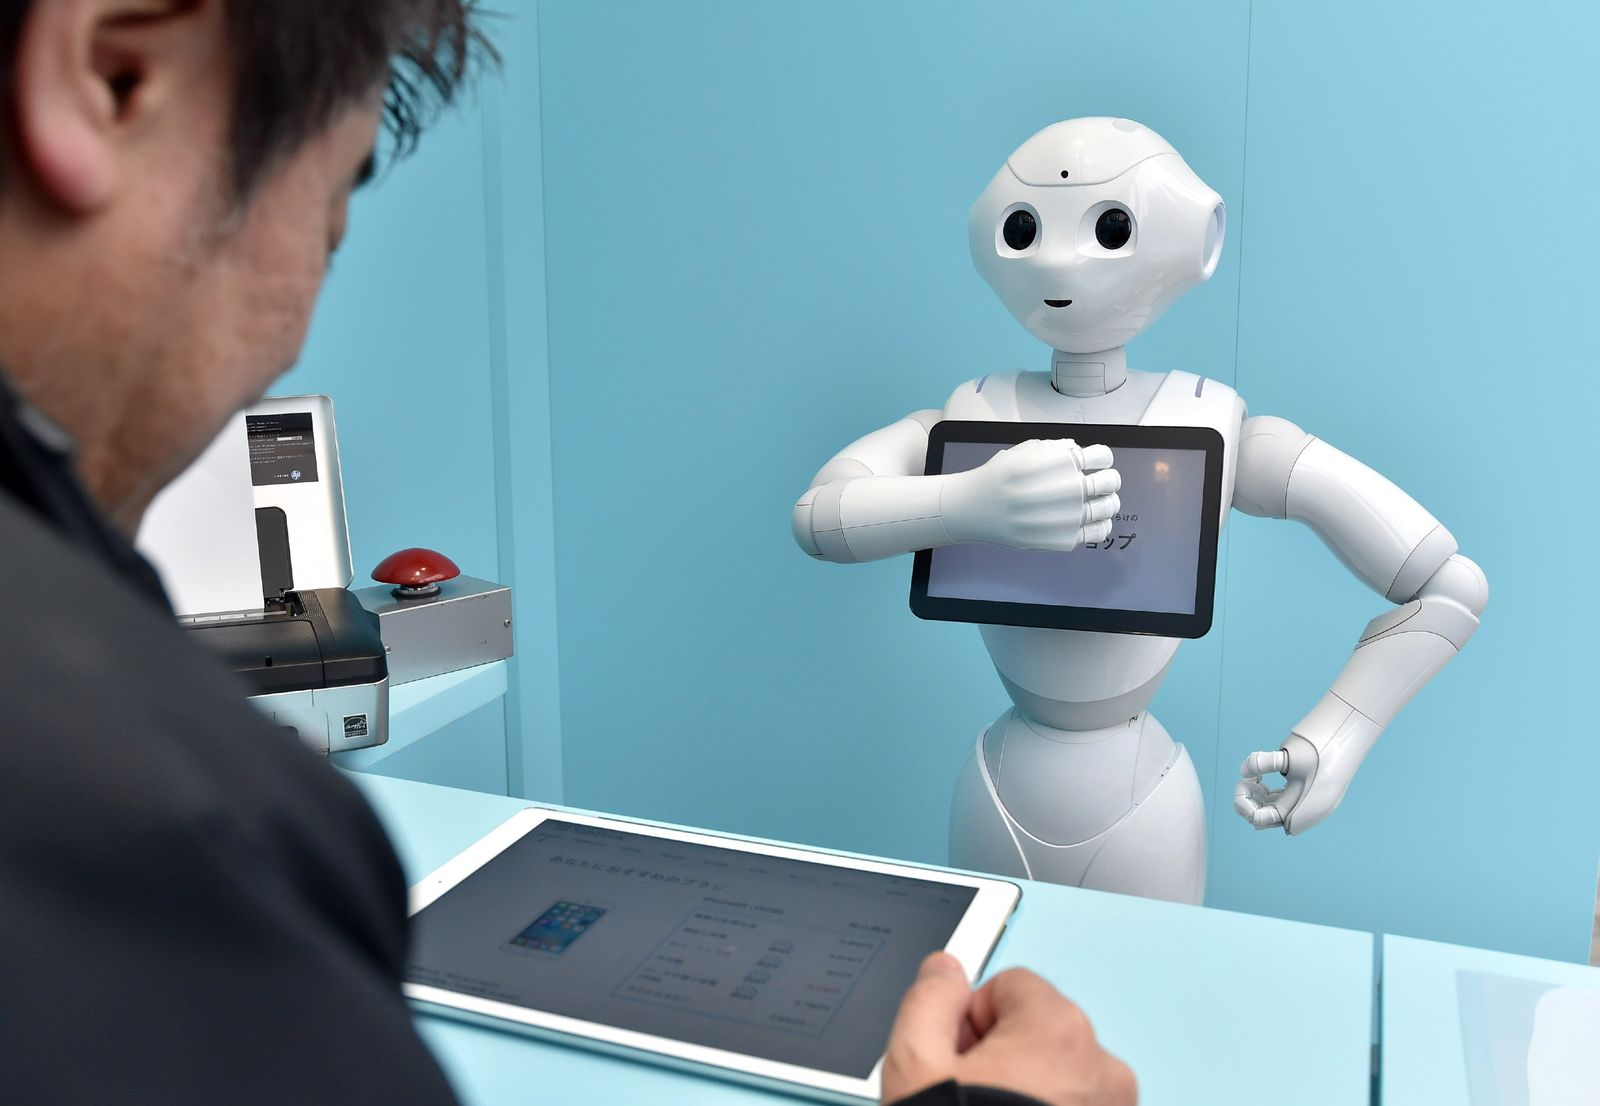 Softbank launches a humanoid robot service